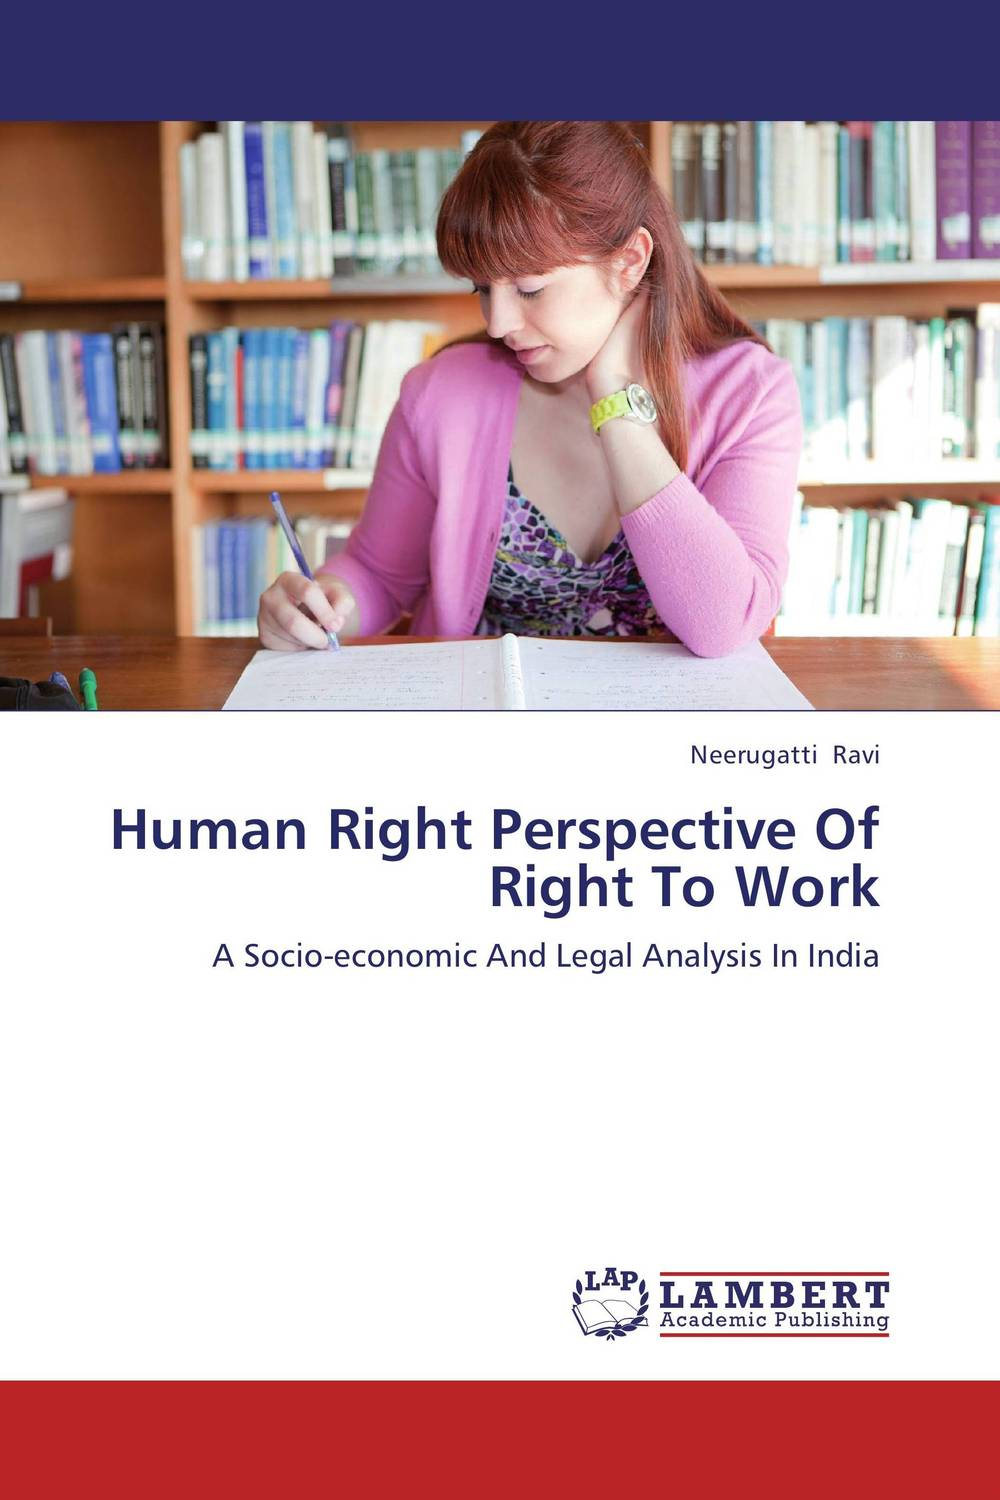 Human Right Perspective Of Right To Work